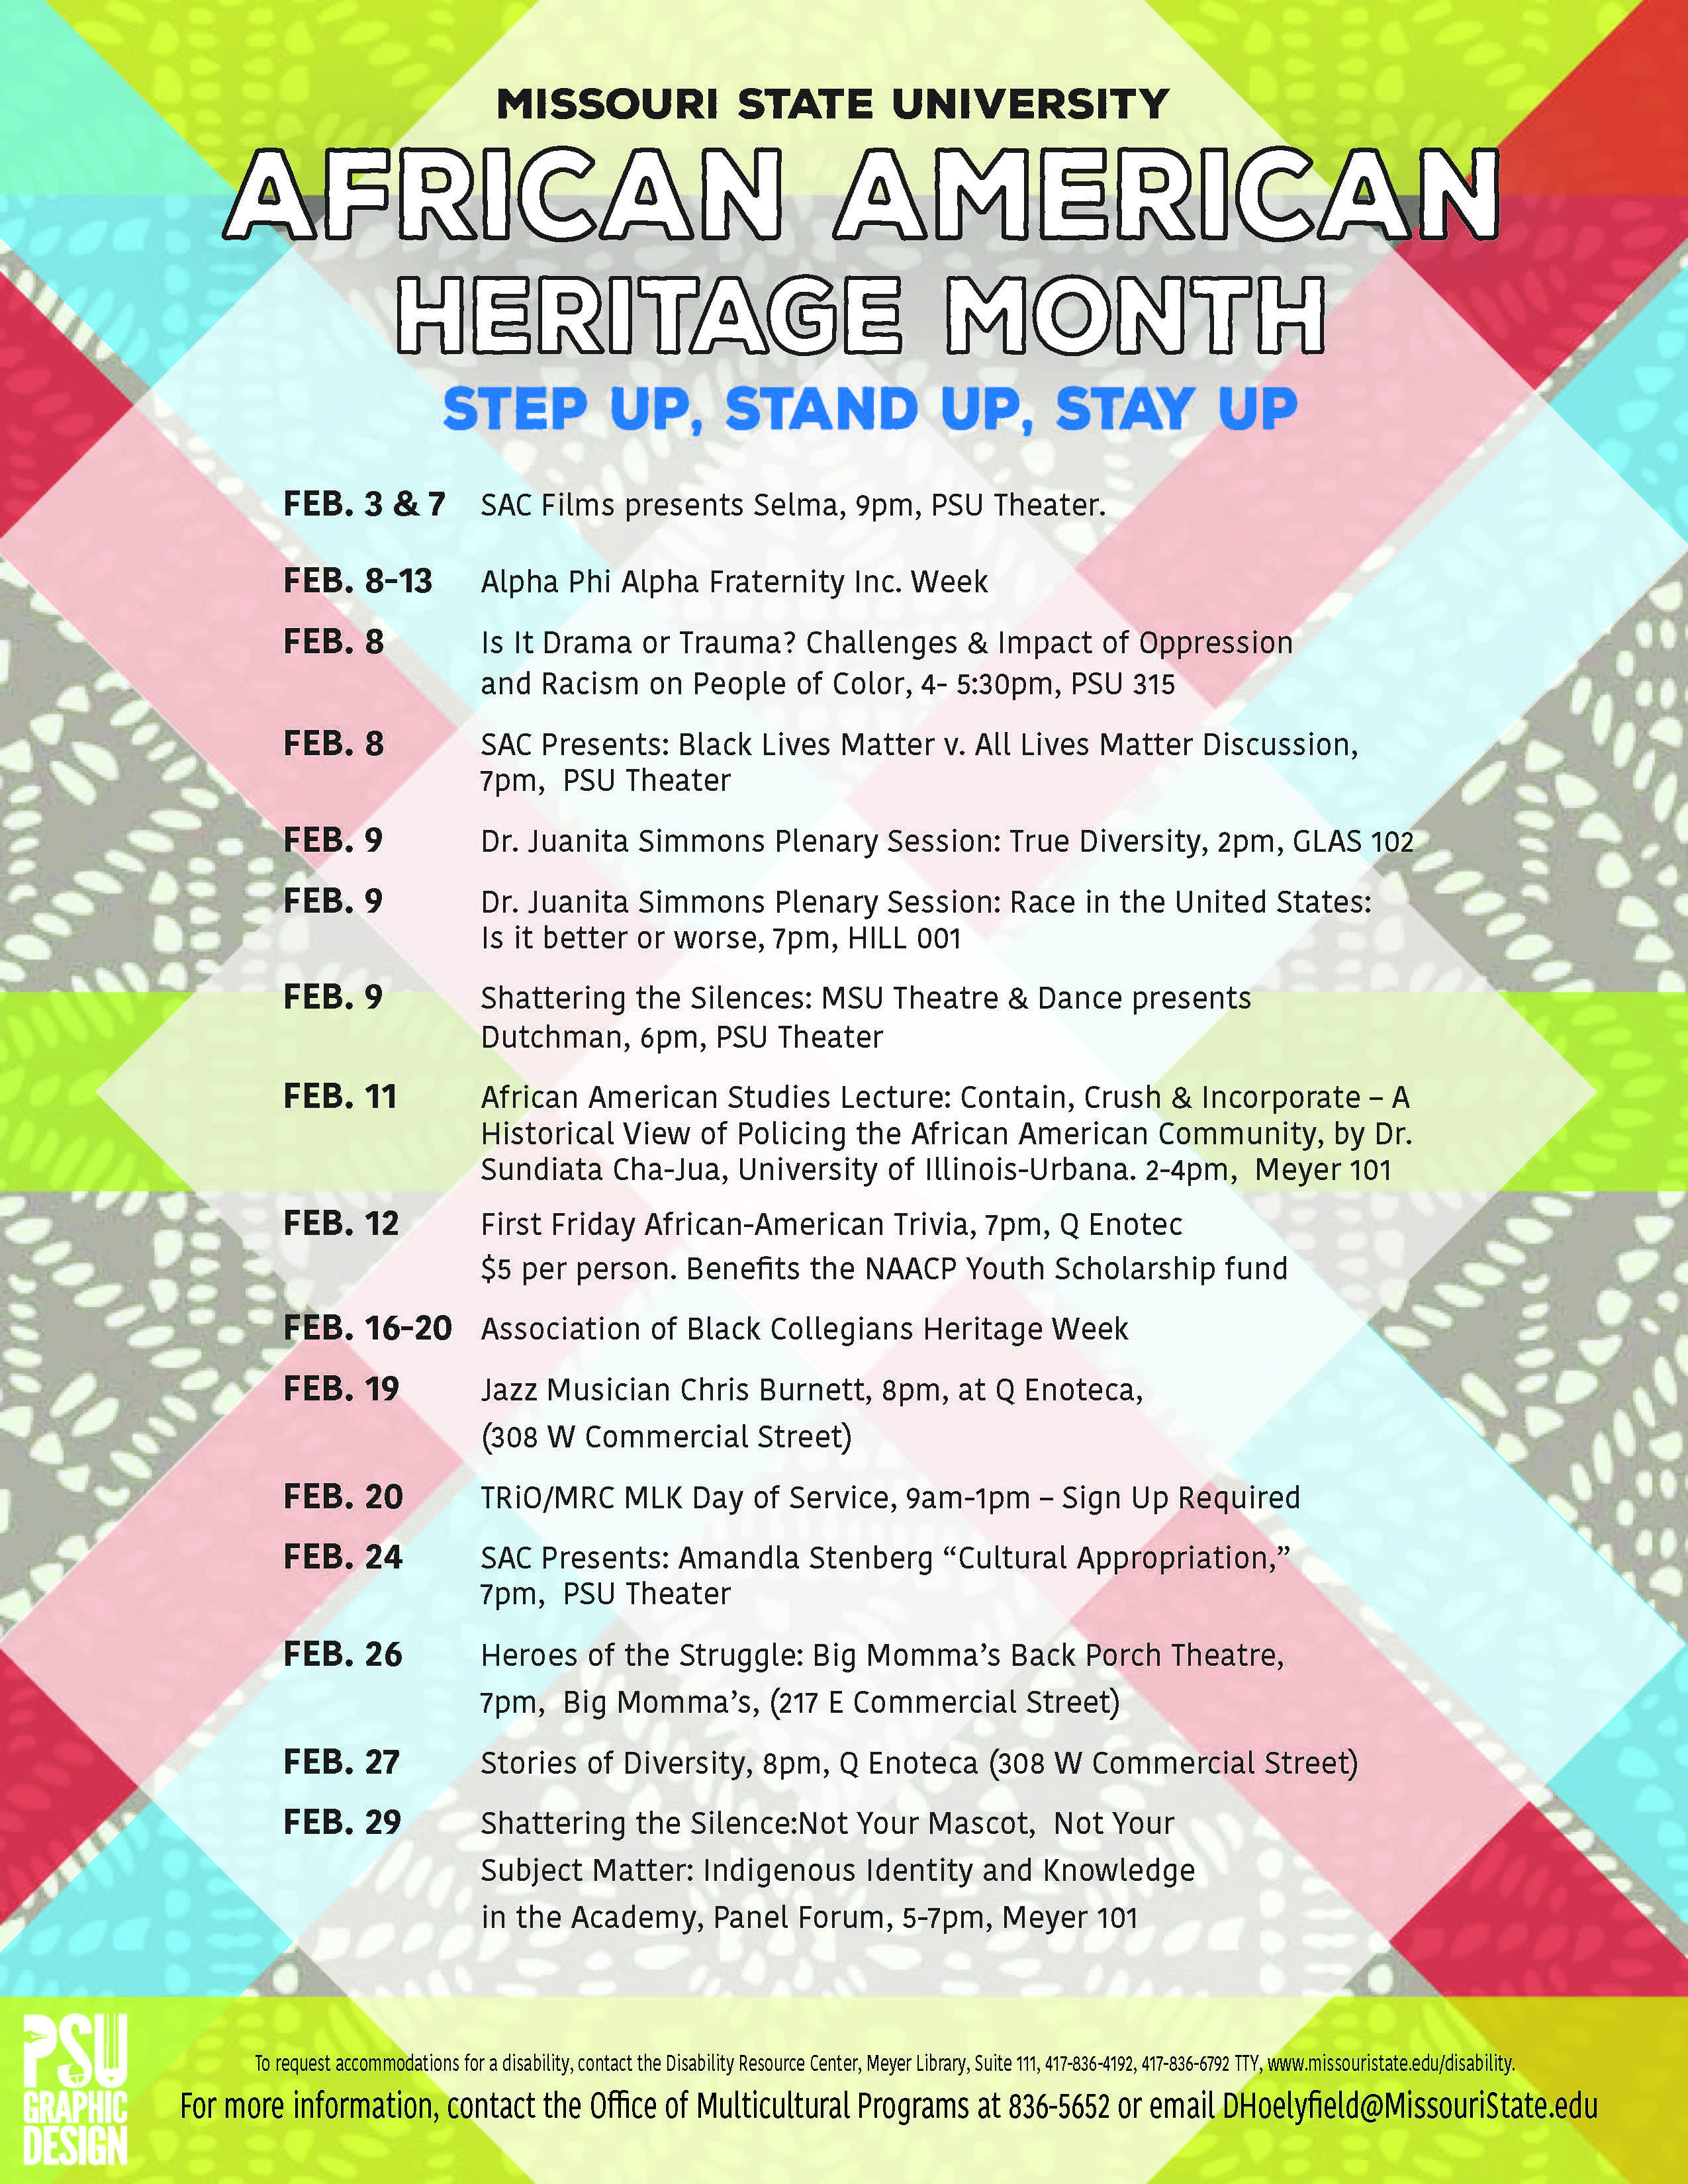 Upcoming Events: African American Heritage Month